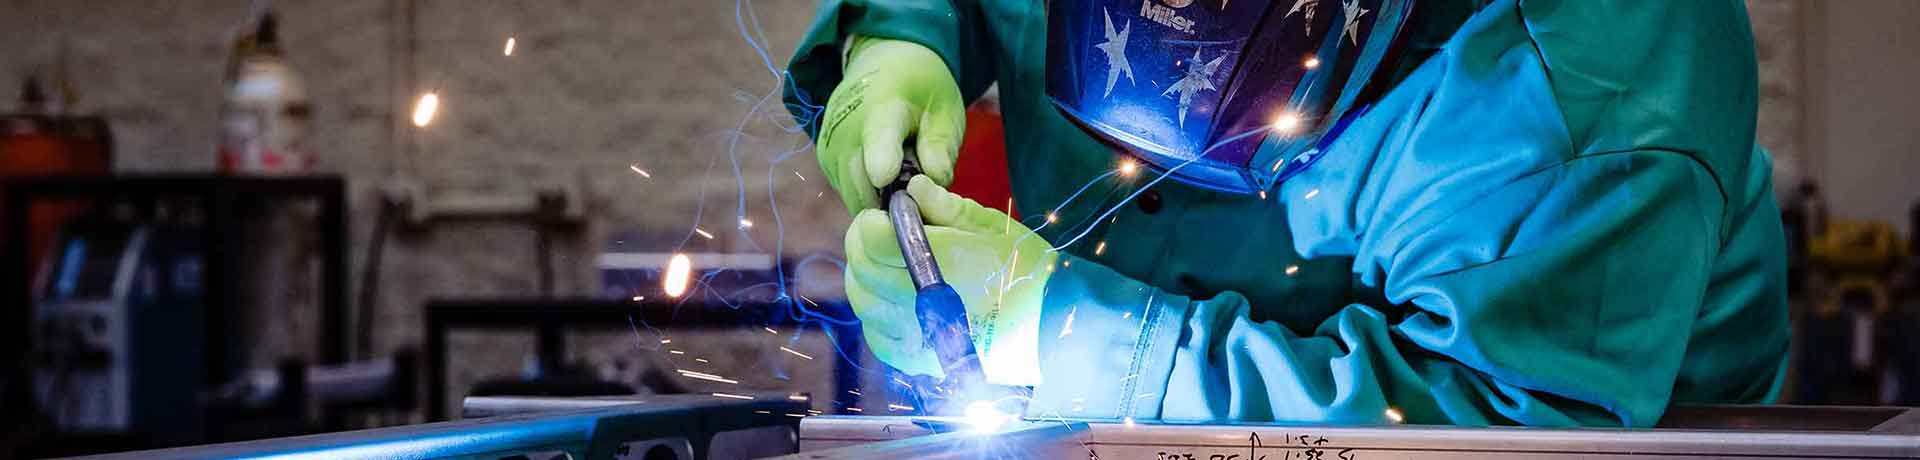 Services Hero Image of Hidaka Welder Welding With Mask On - Dot The i Creative Digital Marketing Services